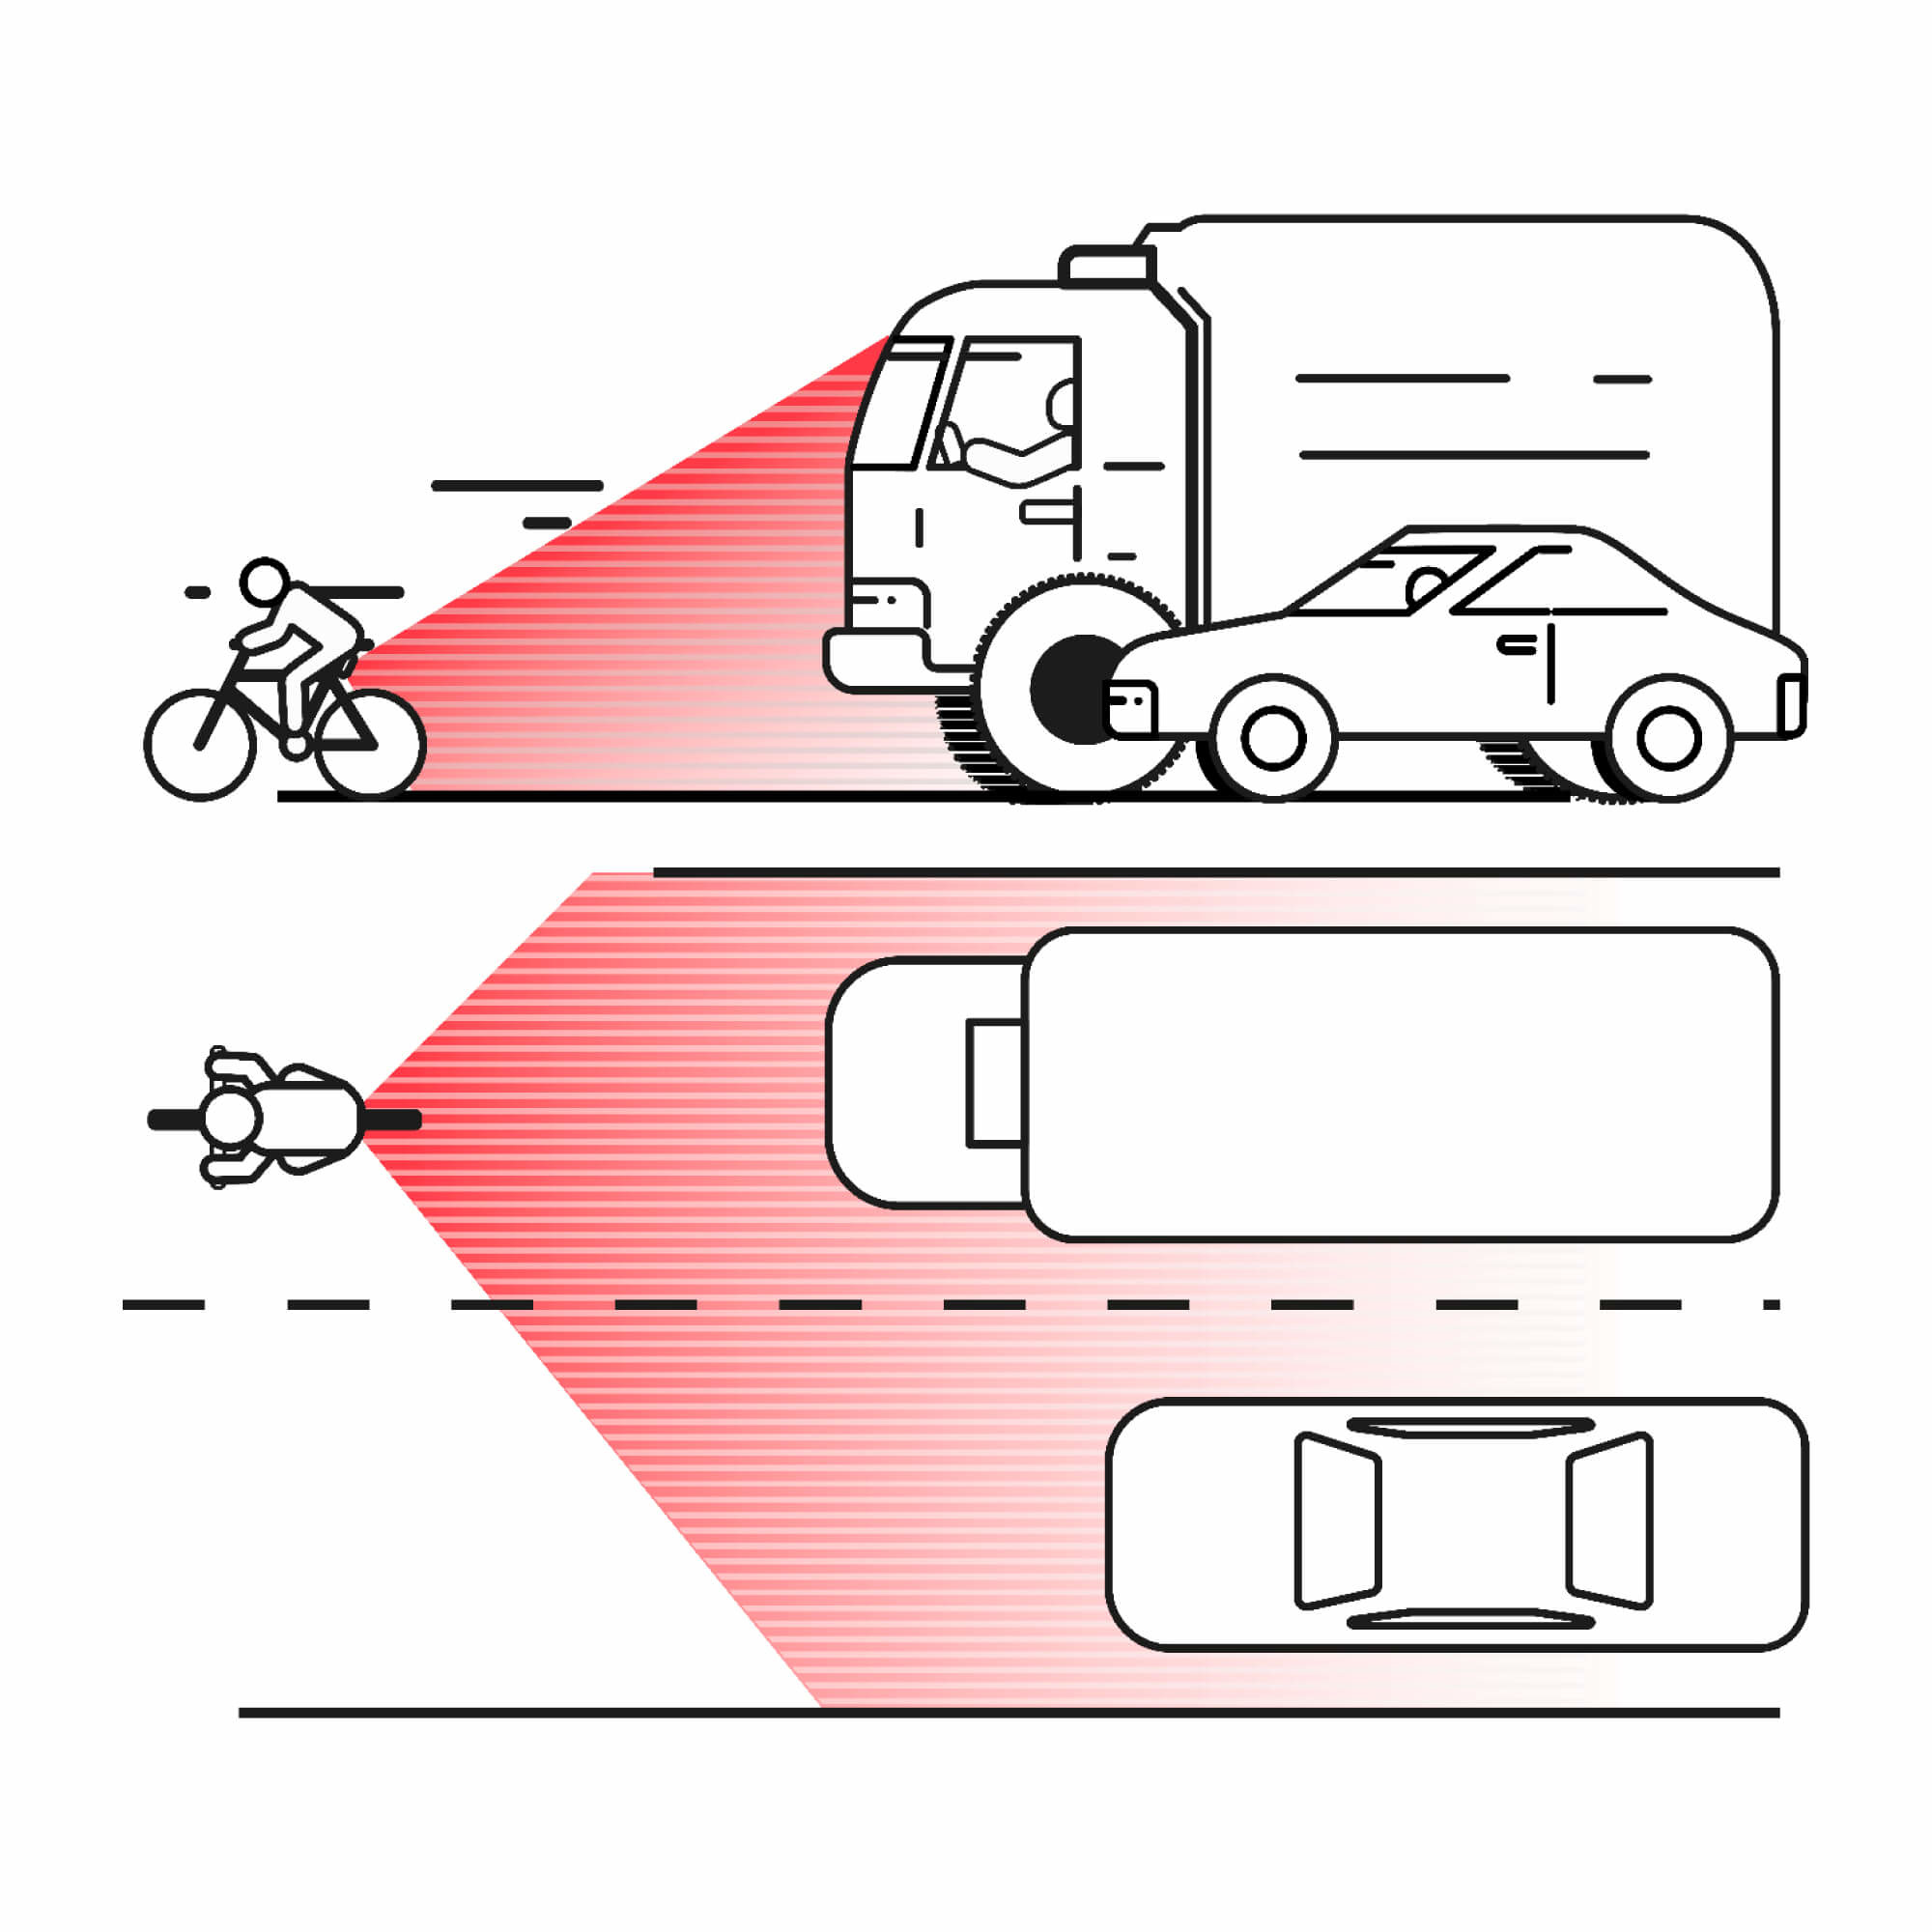 Bicycle Smart Rear Light-5